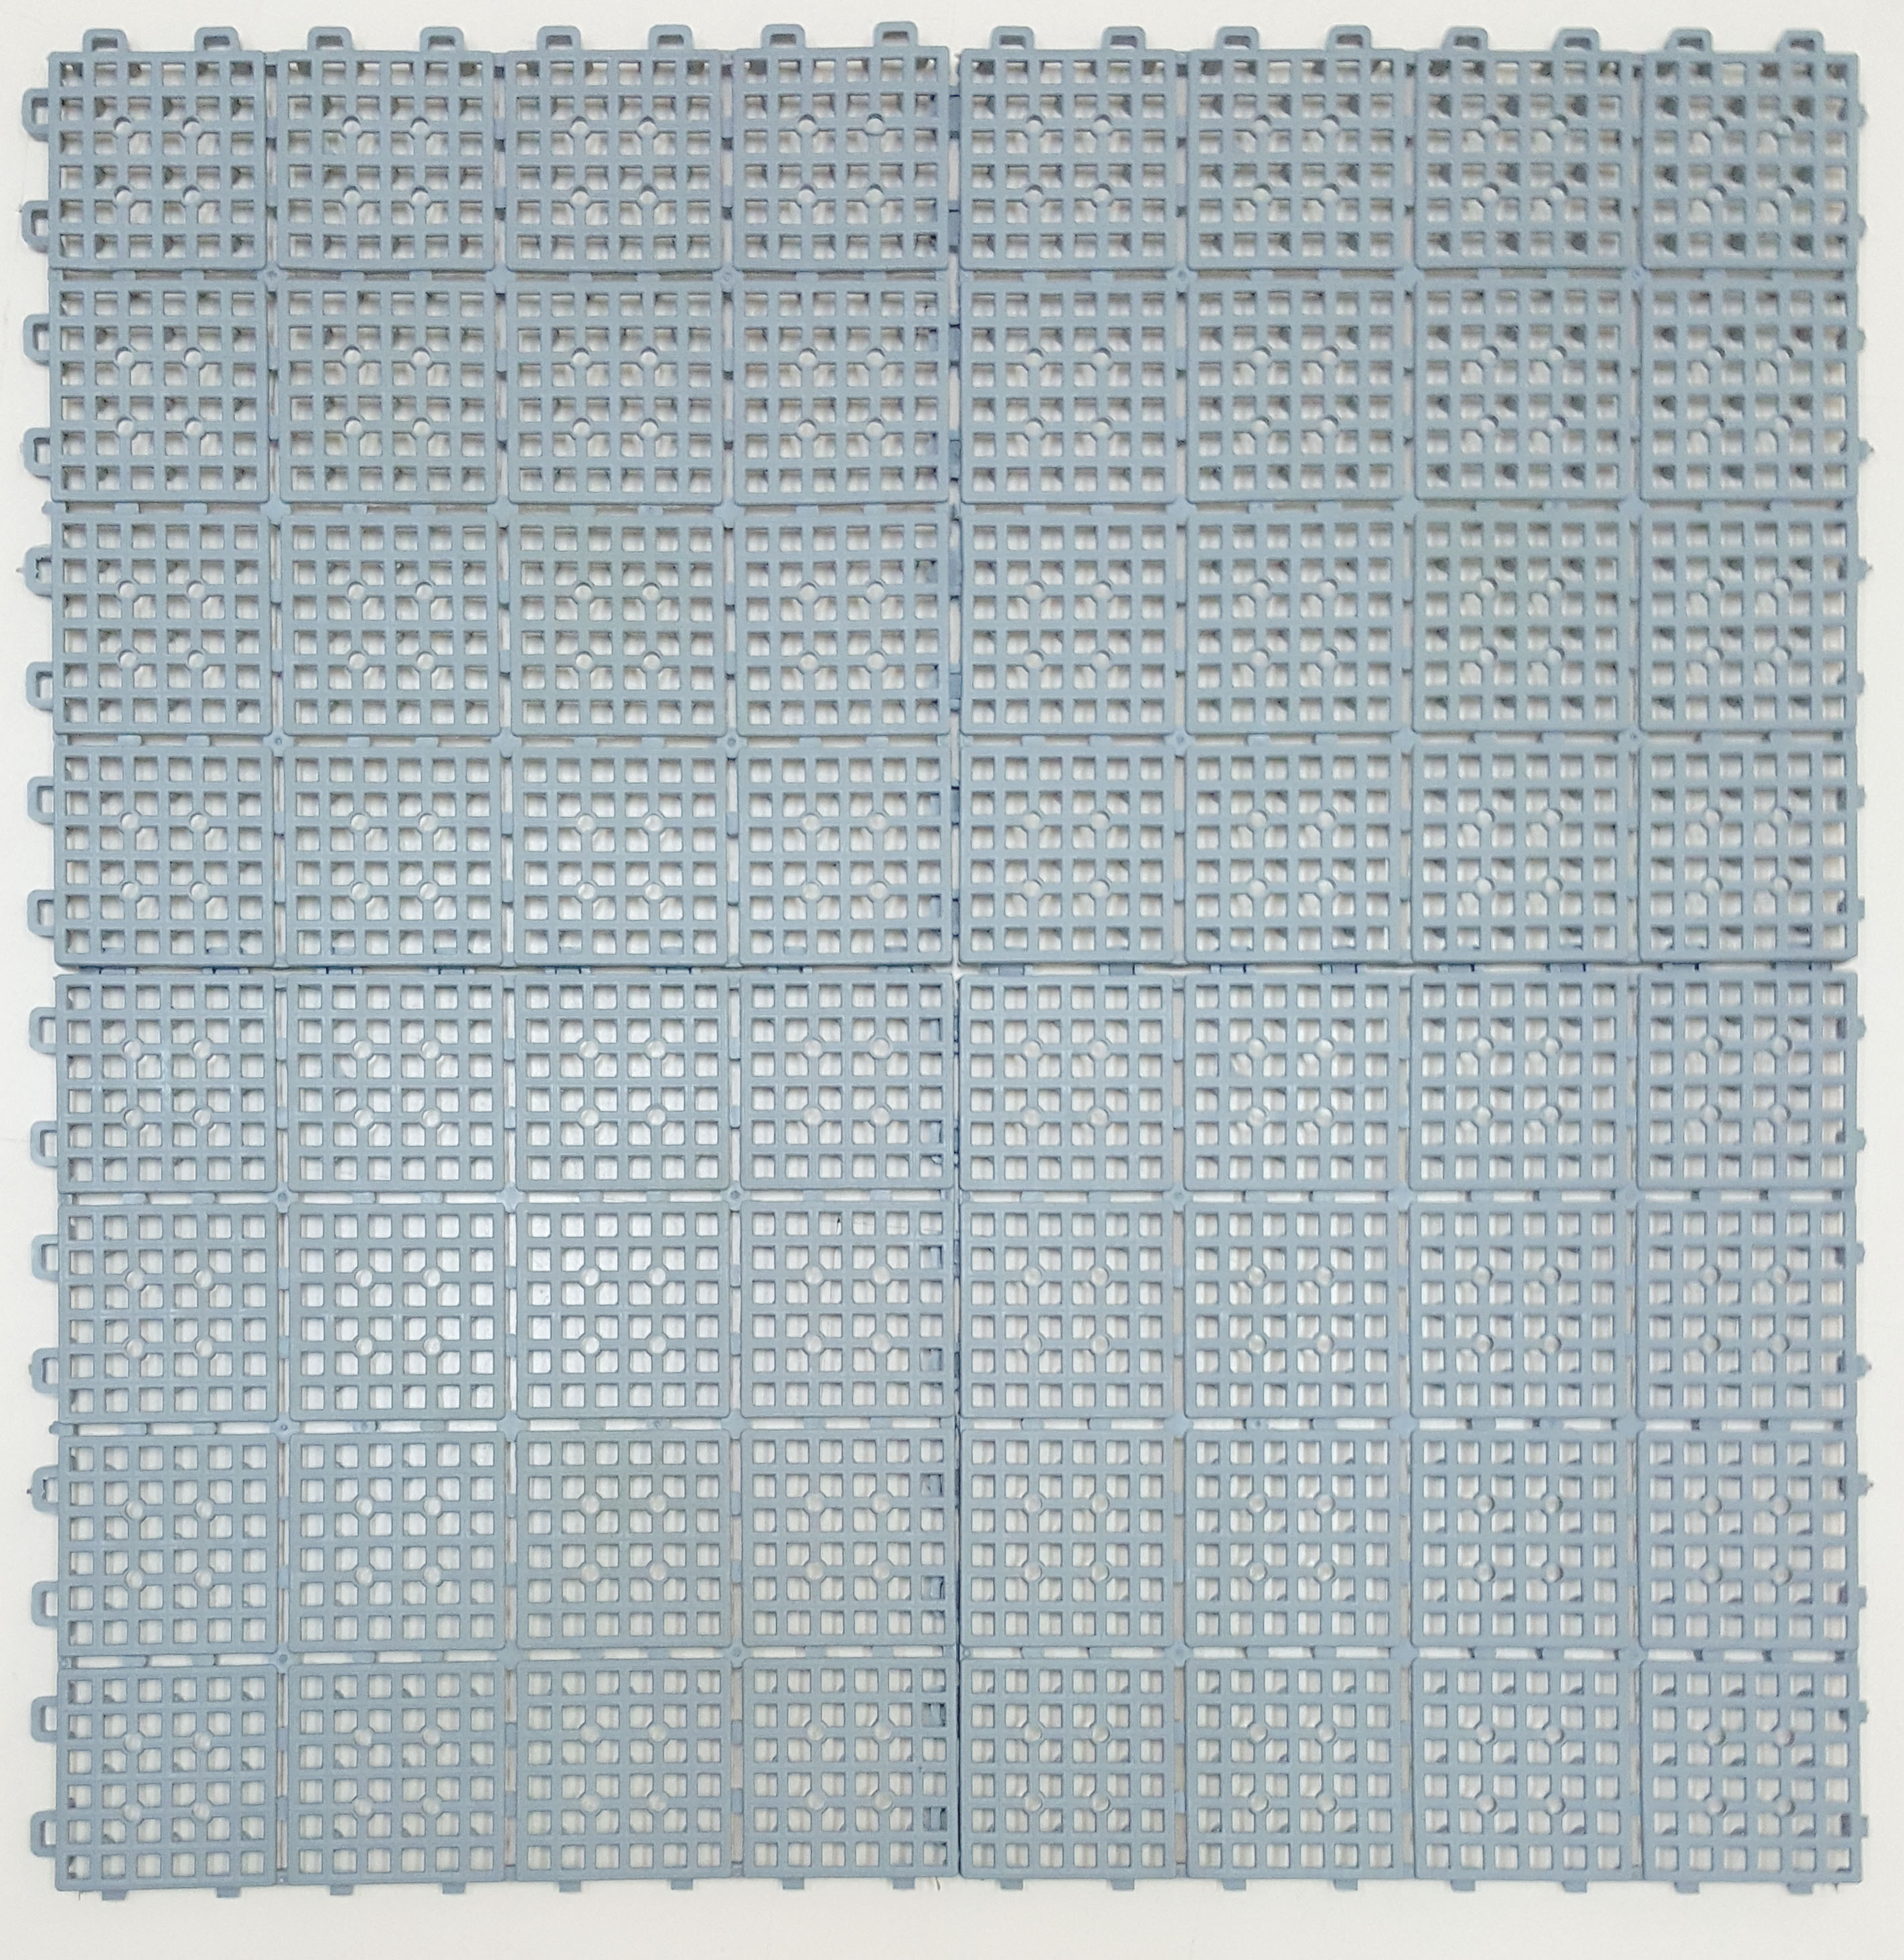 TM Toilet Mat (Anti Skid Toilet Mat)